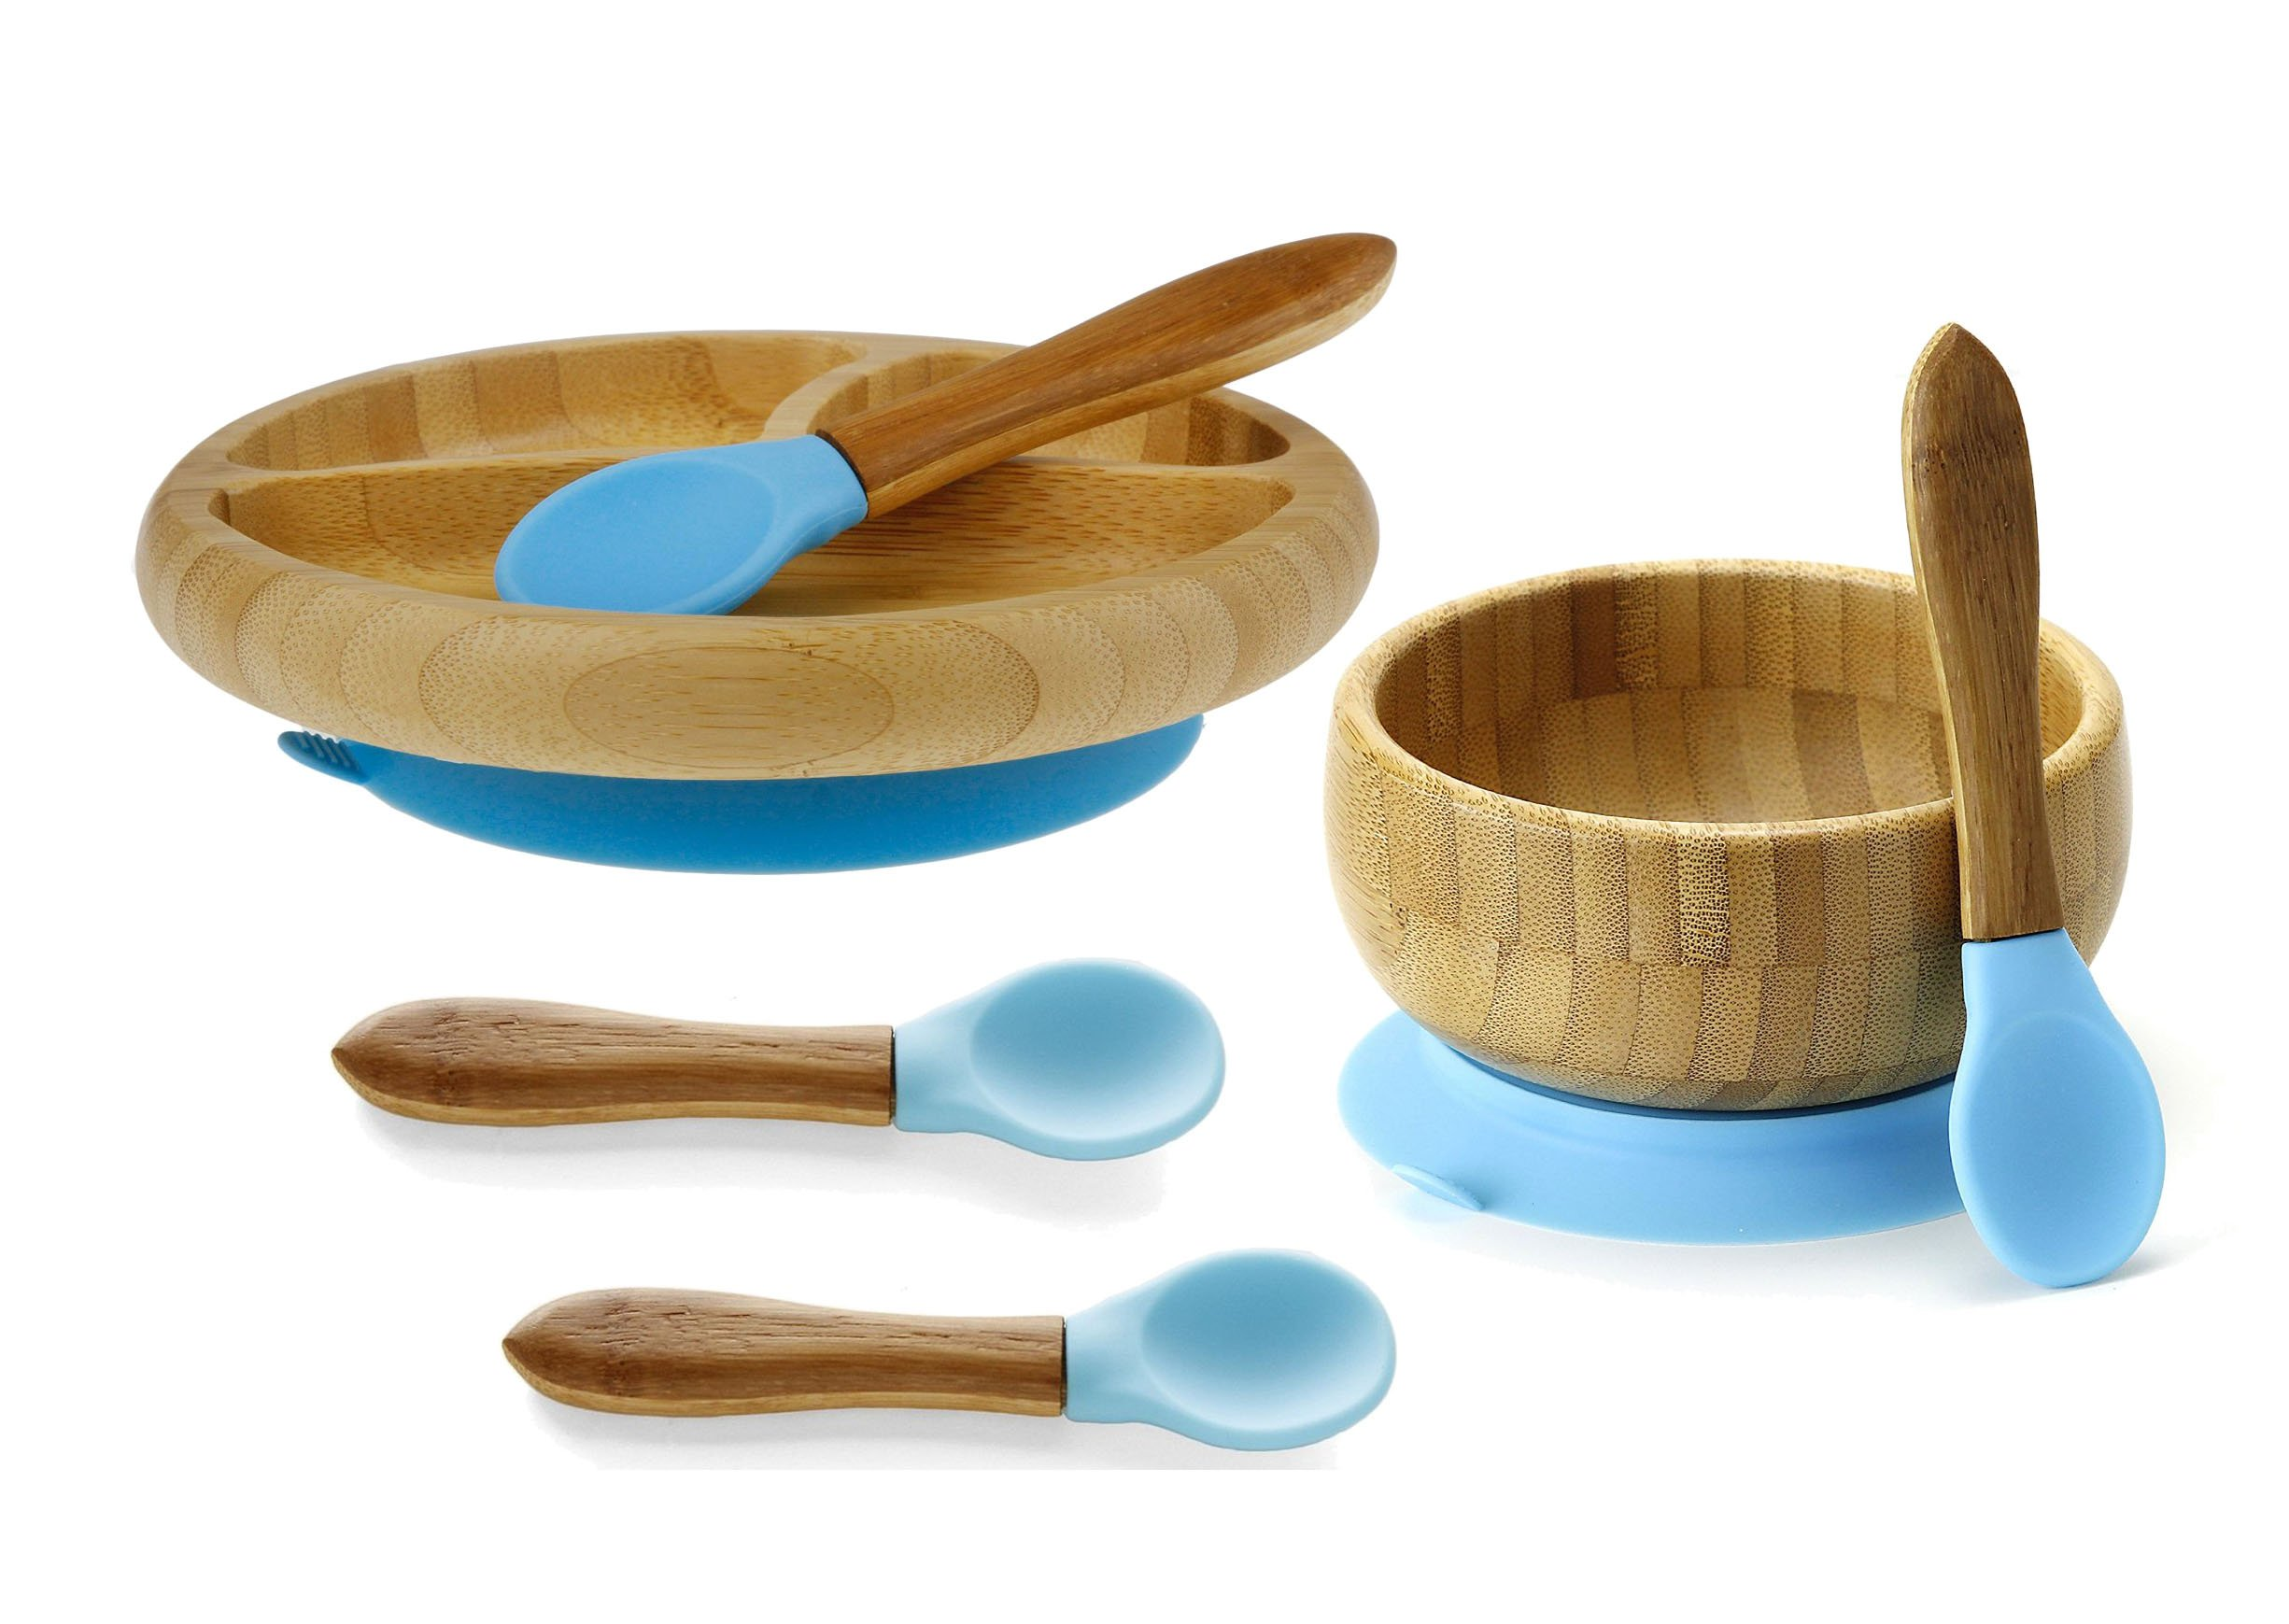 Avanchy Feeding Bamboo Spill Proof - Stay Put Suction Bowl, Blue with Avanchy Feeding Bamboo Divided Plate and Avanchy Toddler Infant Feeding Spoon - A Great Baby Gift Set! 2 Spoons Pack, Blue